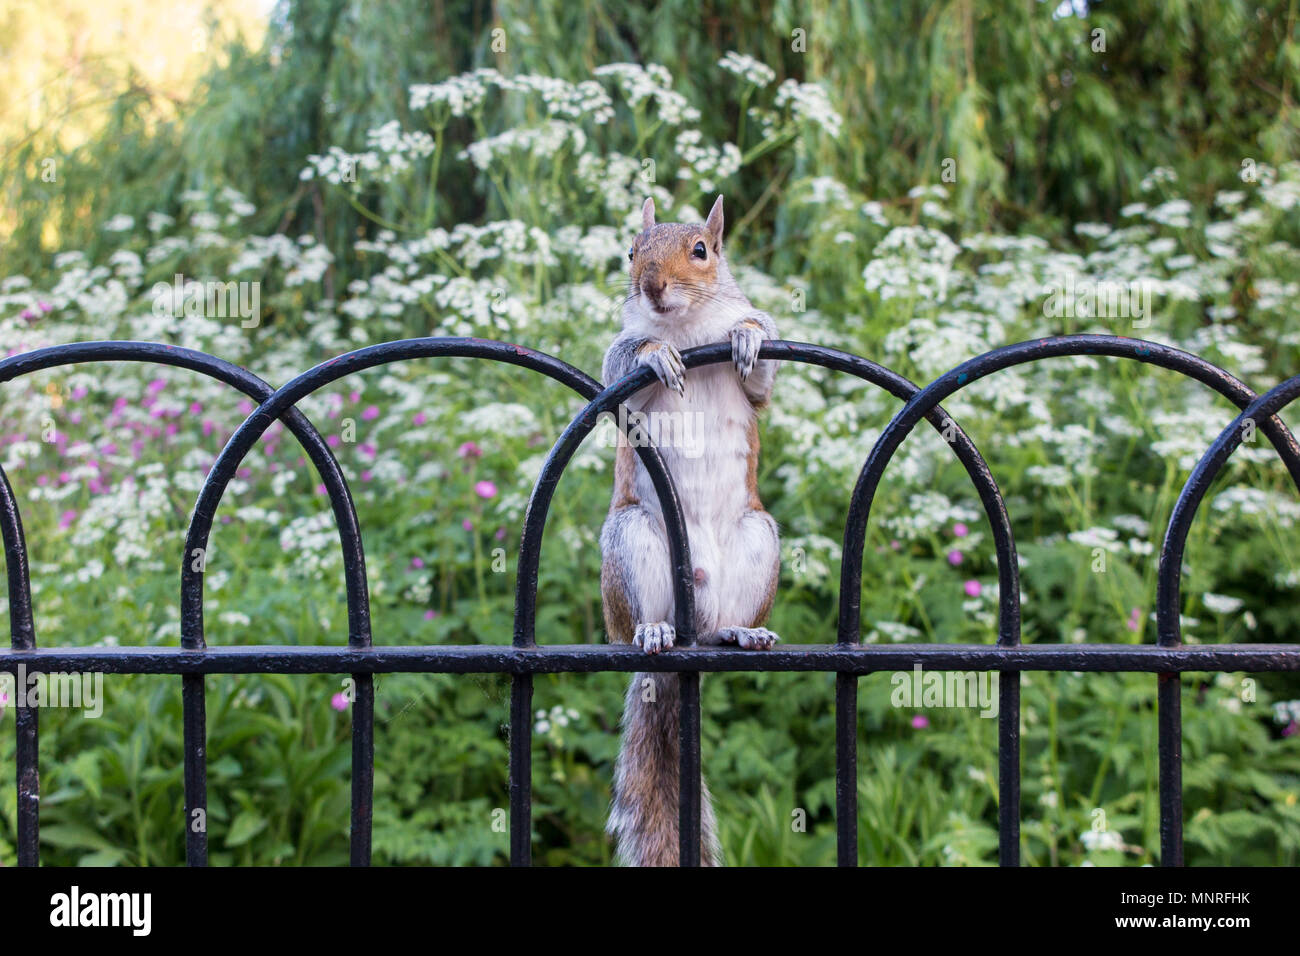 A cheeky squirrel hangs on to some railings and looks into the camera - Stock Image